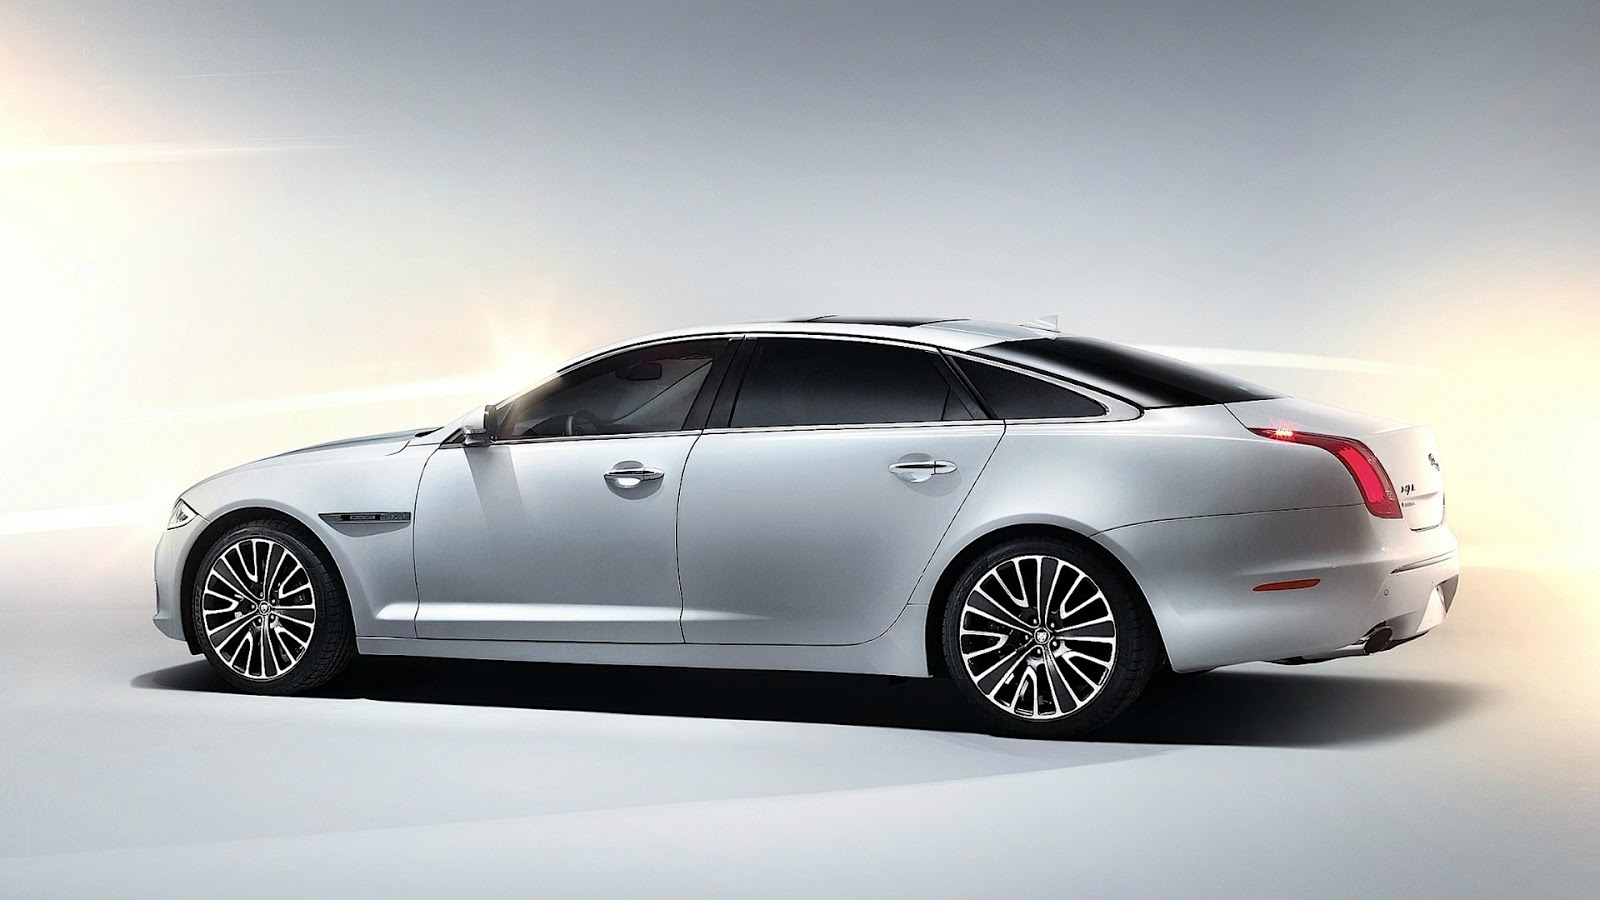 Hd wallpaper jaguar - Top 40 Jaguar Xe Hd Wallpaper Collection All Latest New Old Car Hd Image Collection